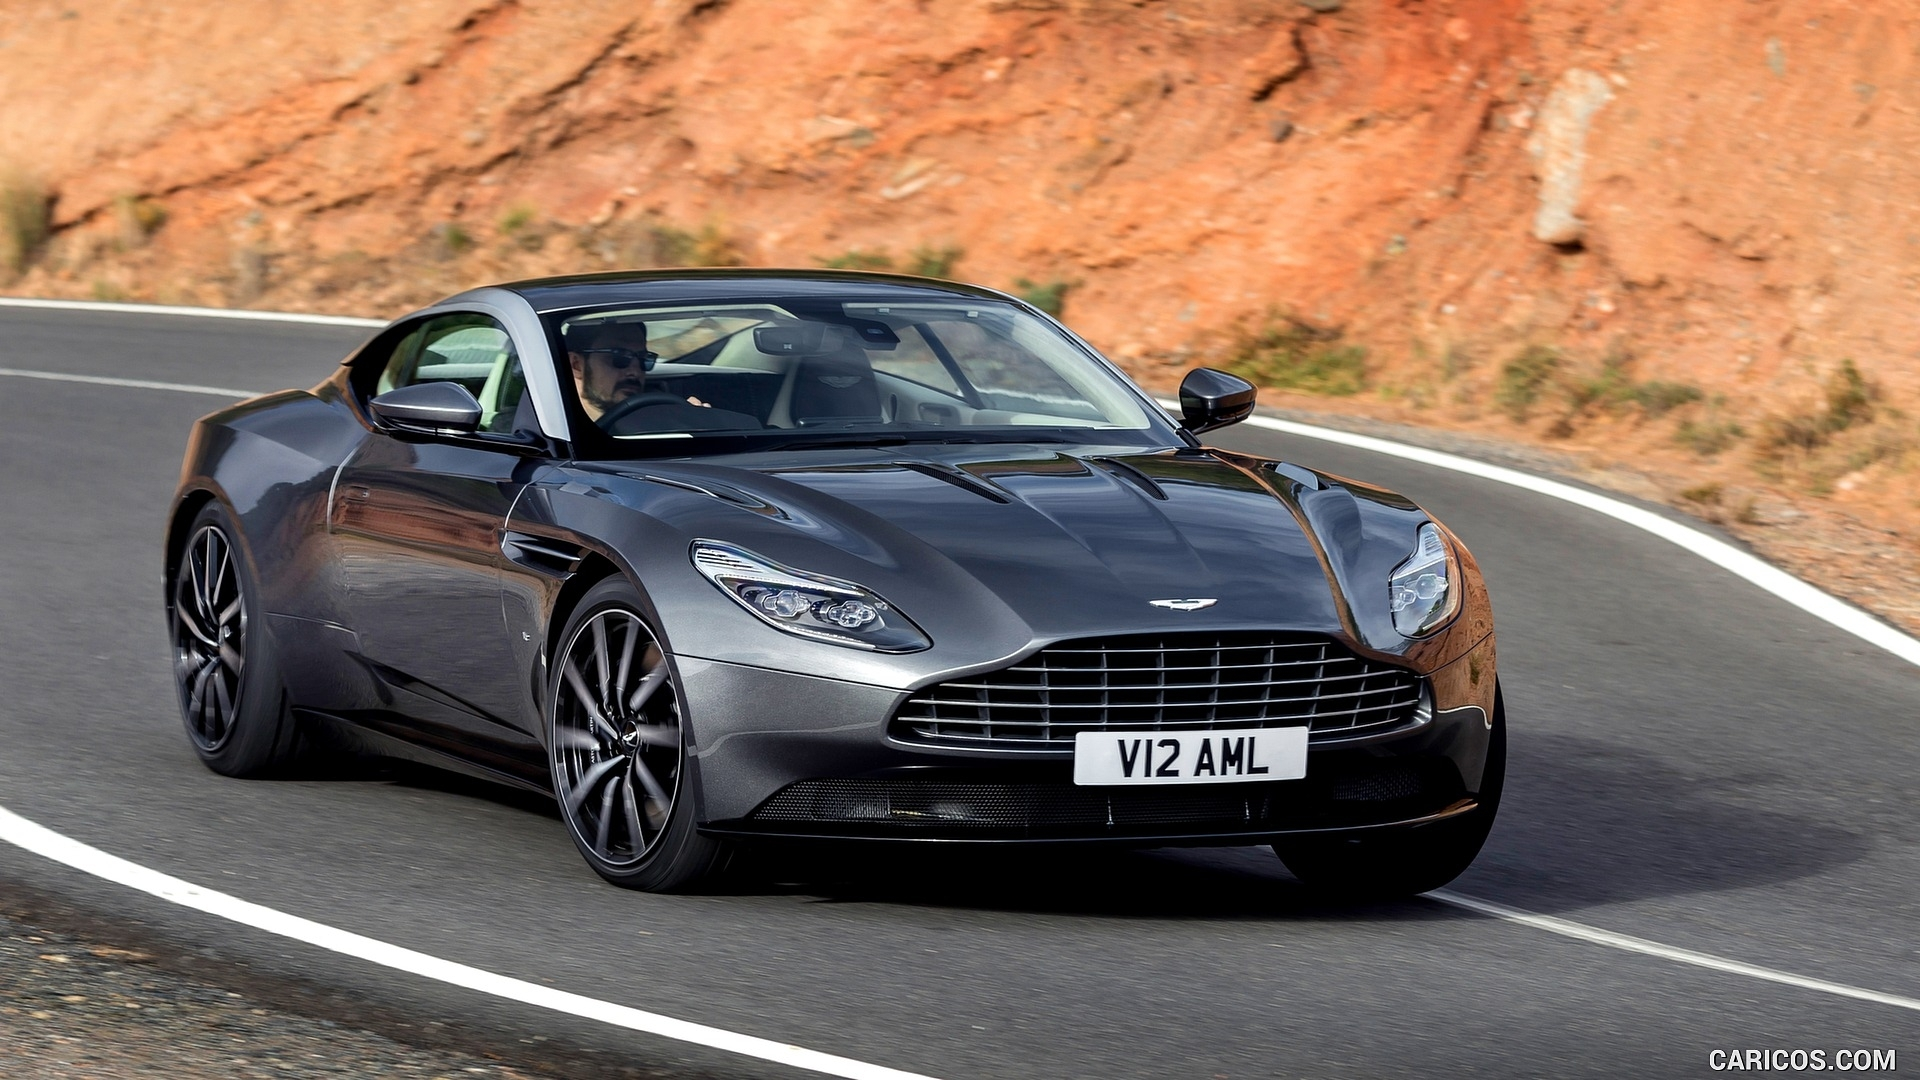 2017 aston martin db11 - front | hd wallpaper #1 | 1920x1080